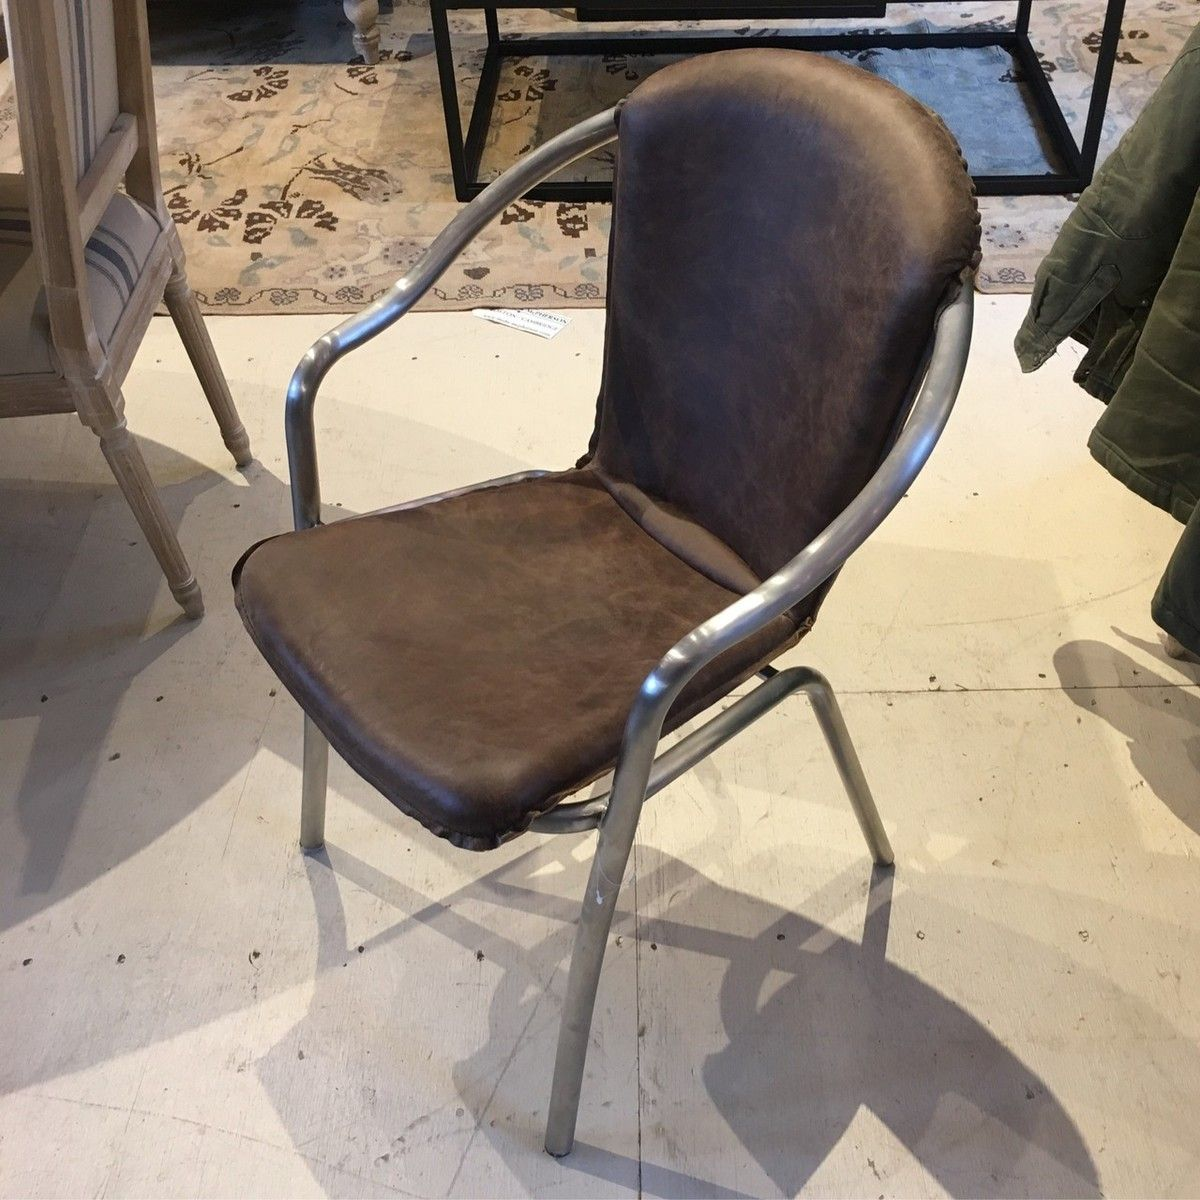 M 6636 On Chair On Brushed Metal Legs In Whiskey Leather Finish Mohr Mcpherson Leather Furniture Chair Brushed Metal